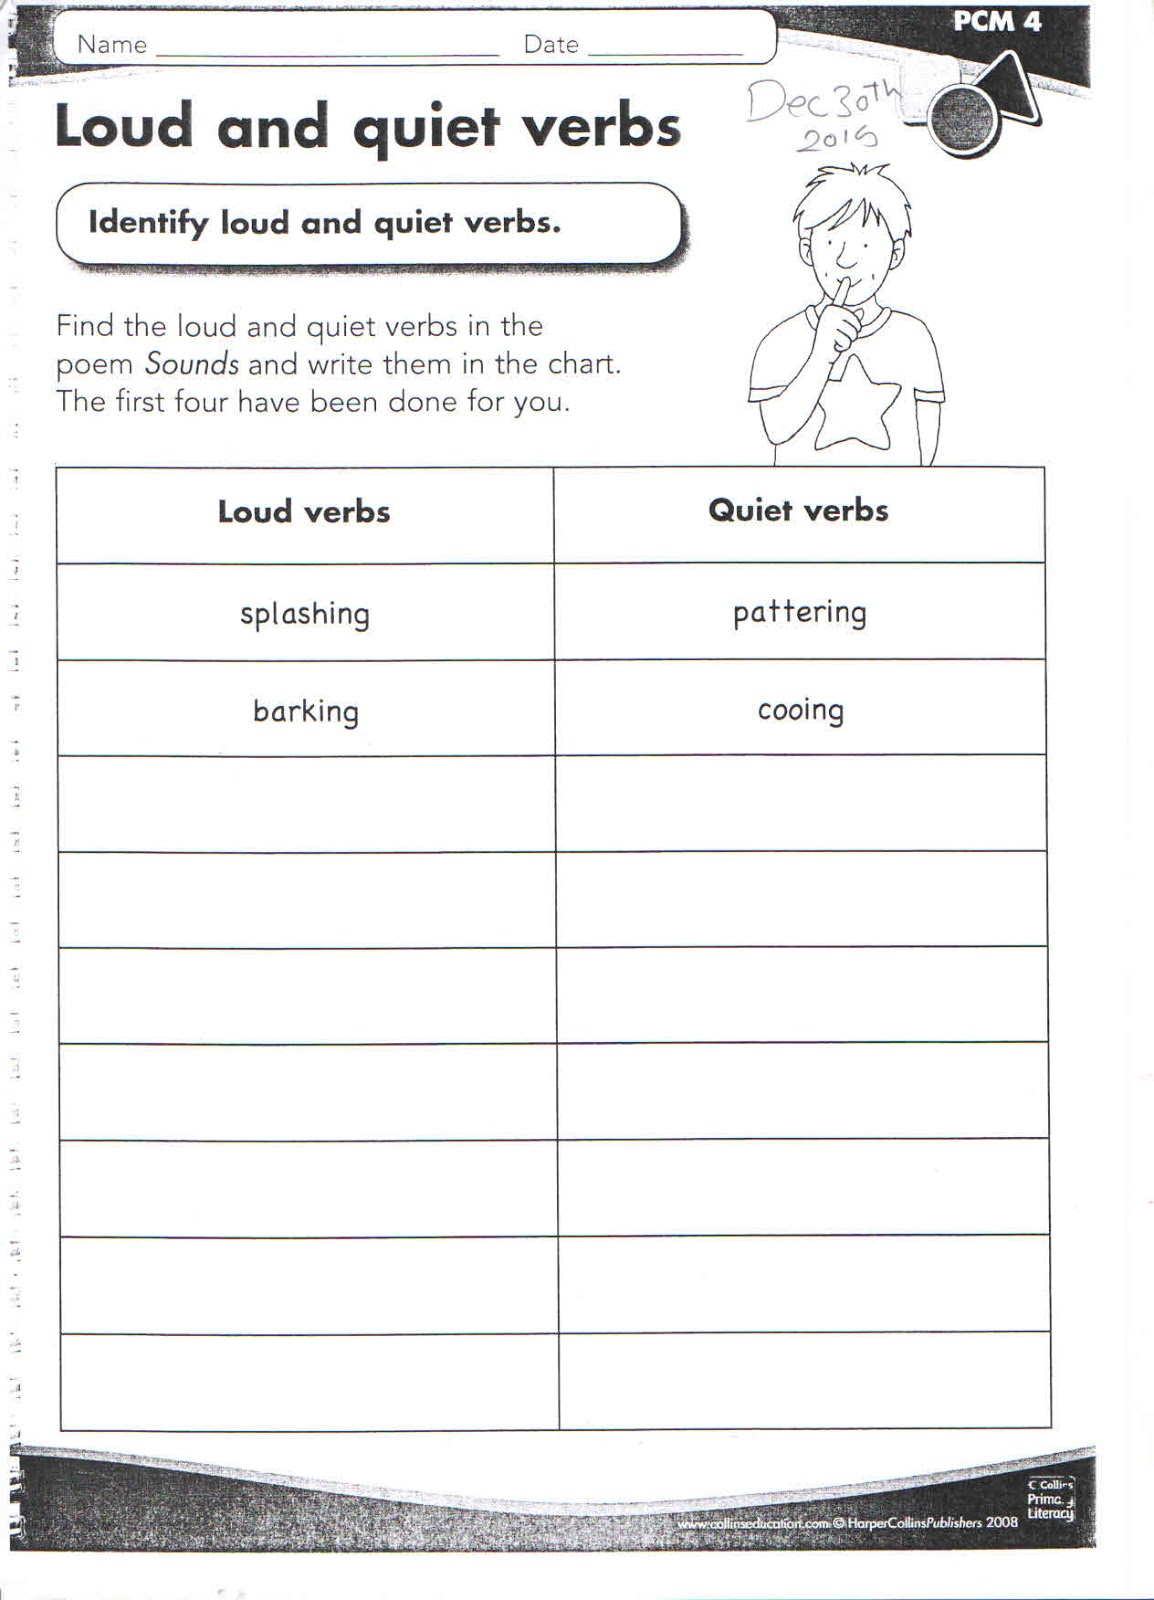 Year 3 Fantasy Loud And Quiet Verbs